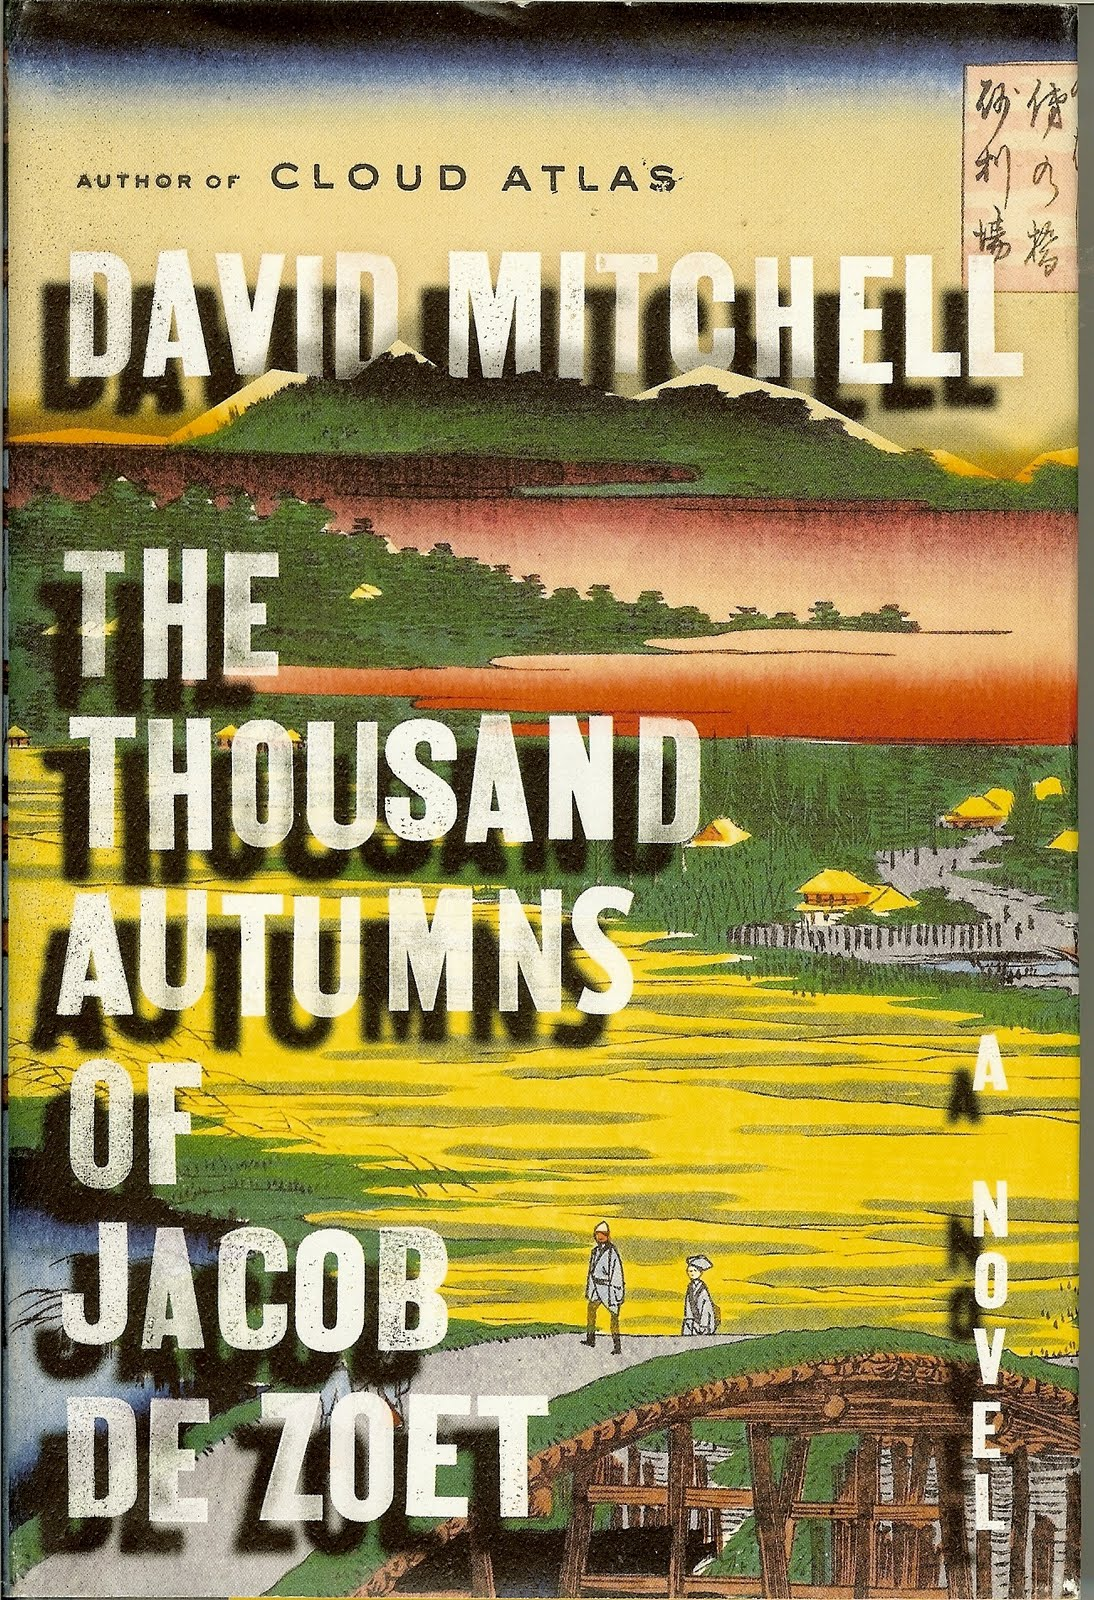 bookcooker: TheThousand Autumns of Jacob de Zoet and Green ...